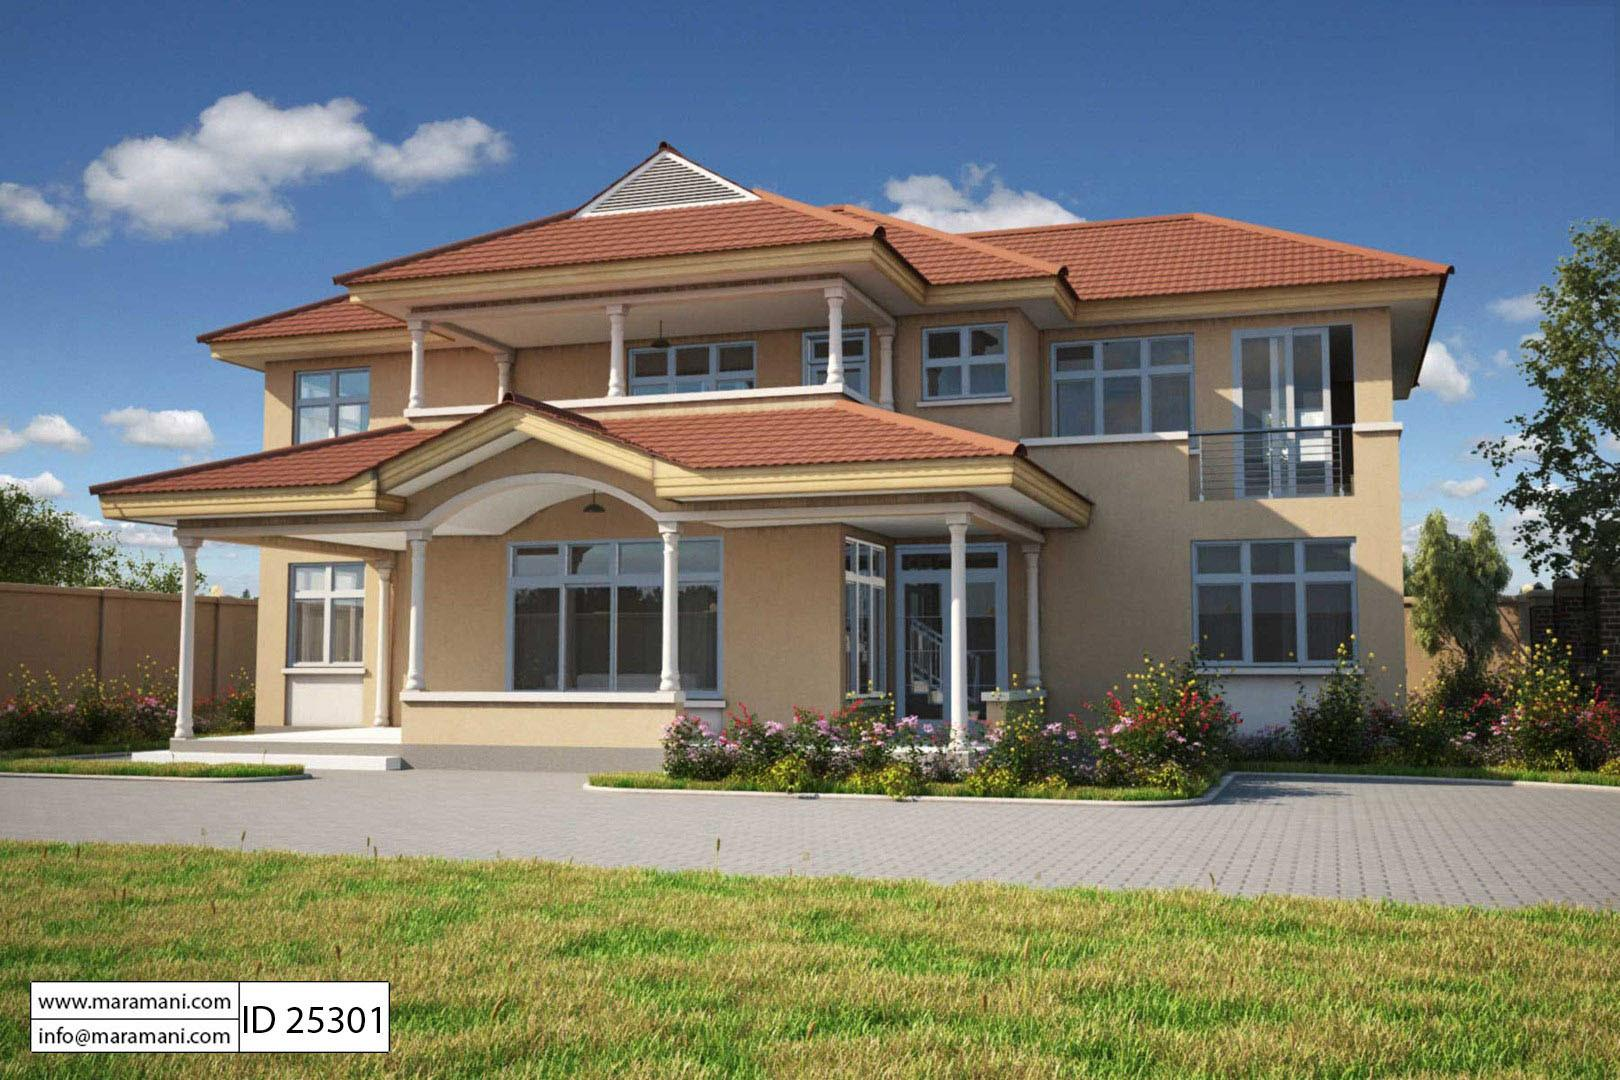 5 bedroom house plan 2 story id 25301 house plans by for 5 bedroom house